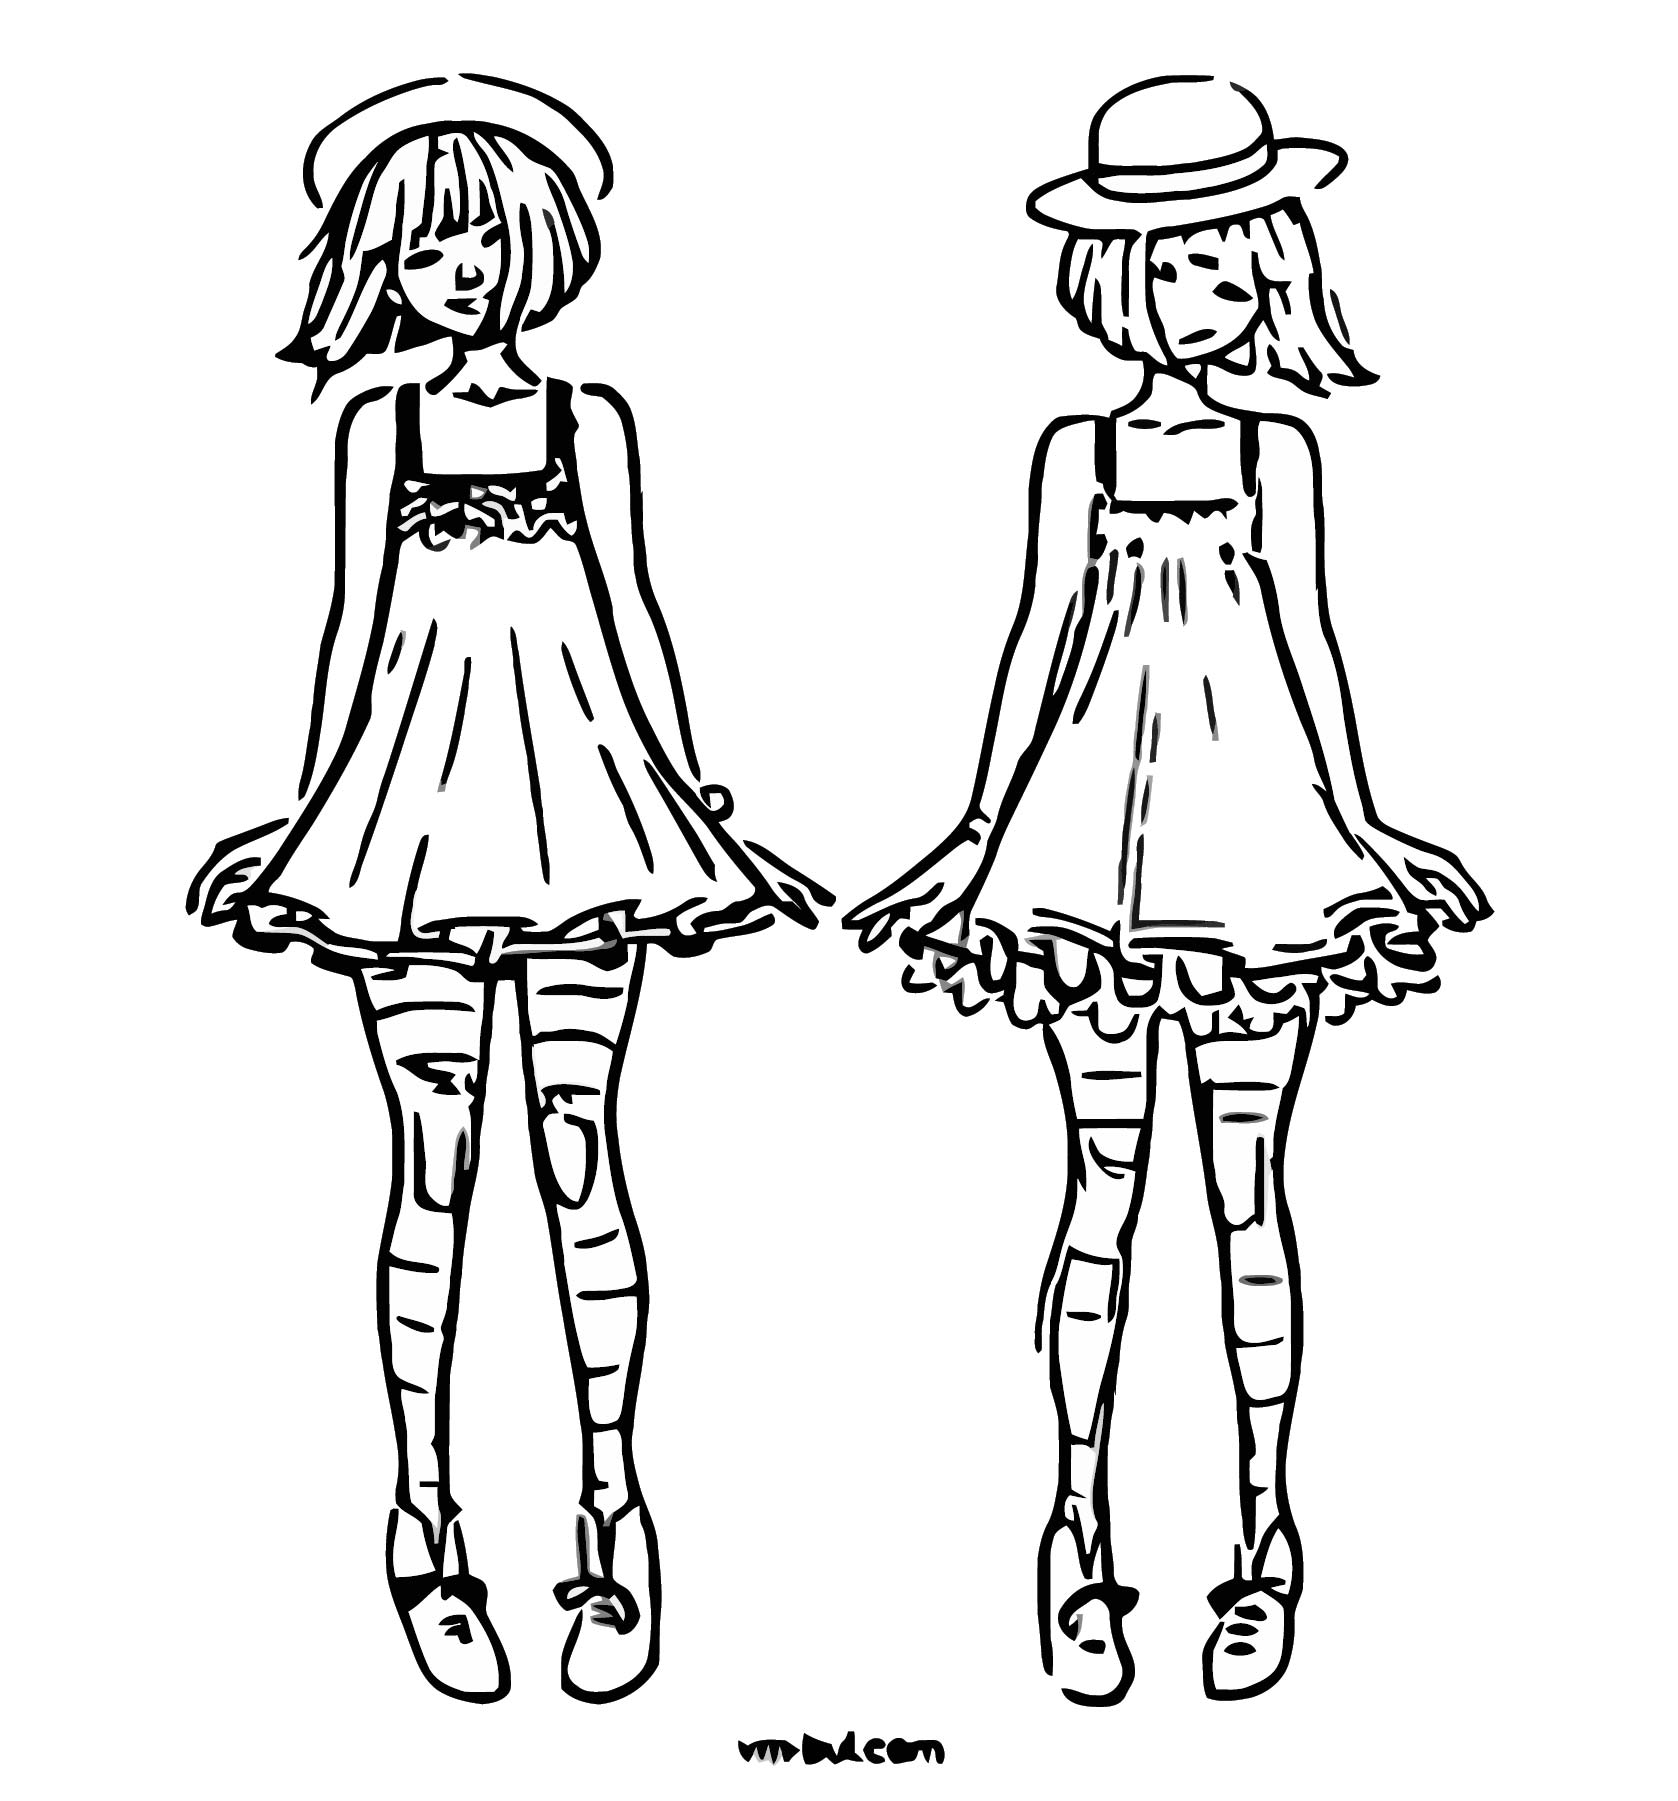 Character Design Quirky Magical Girl Coloring Page